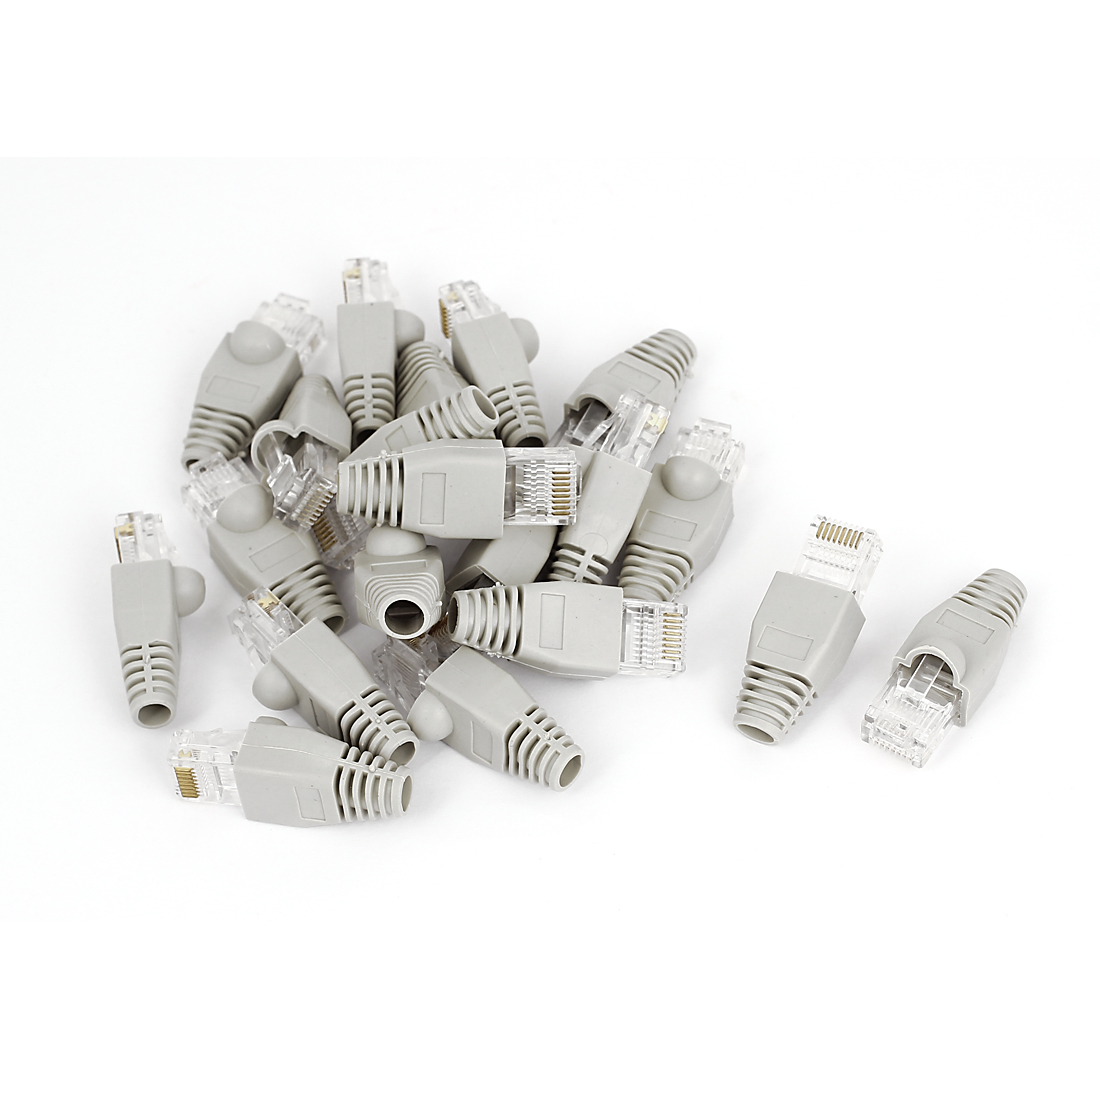 20 Pcs Shielded 8P8C RJ45 Plug End Modular Network Connectors w Boots Cover Gray